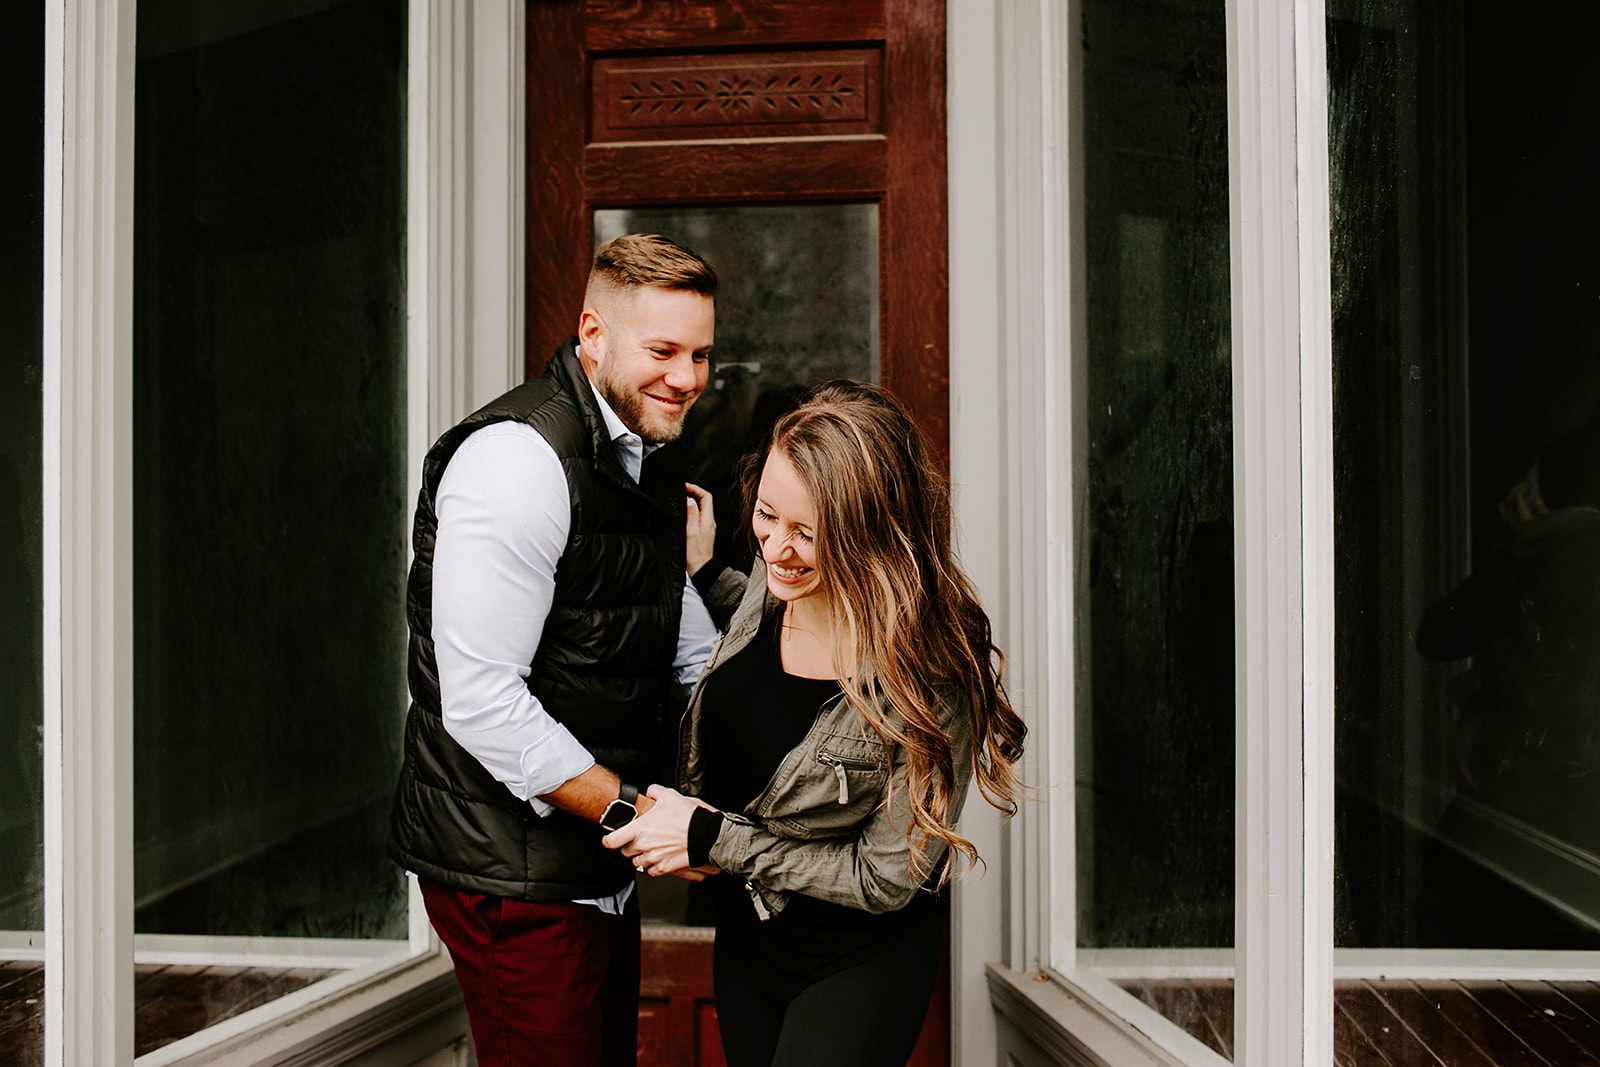 Holly and Michael Engagement Session in Noblesville Indiana by Emily Elyse Wehner Photography LLC-139.jpg